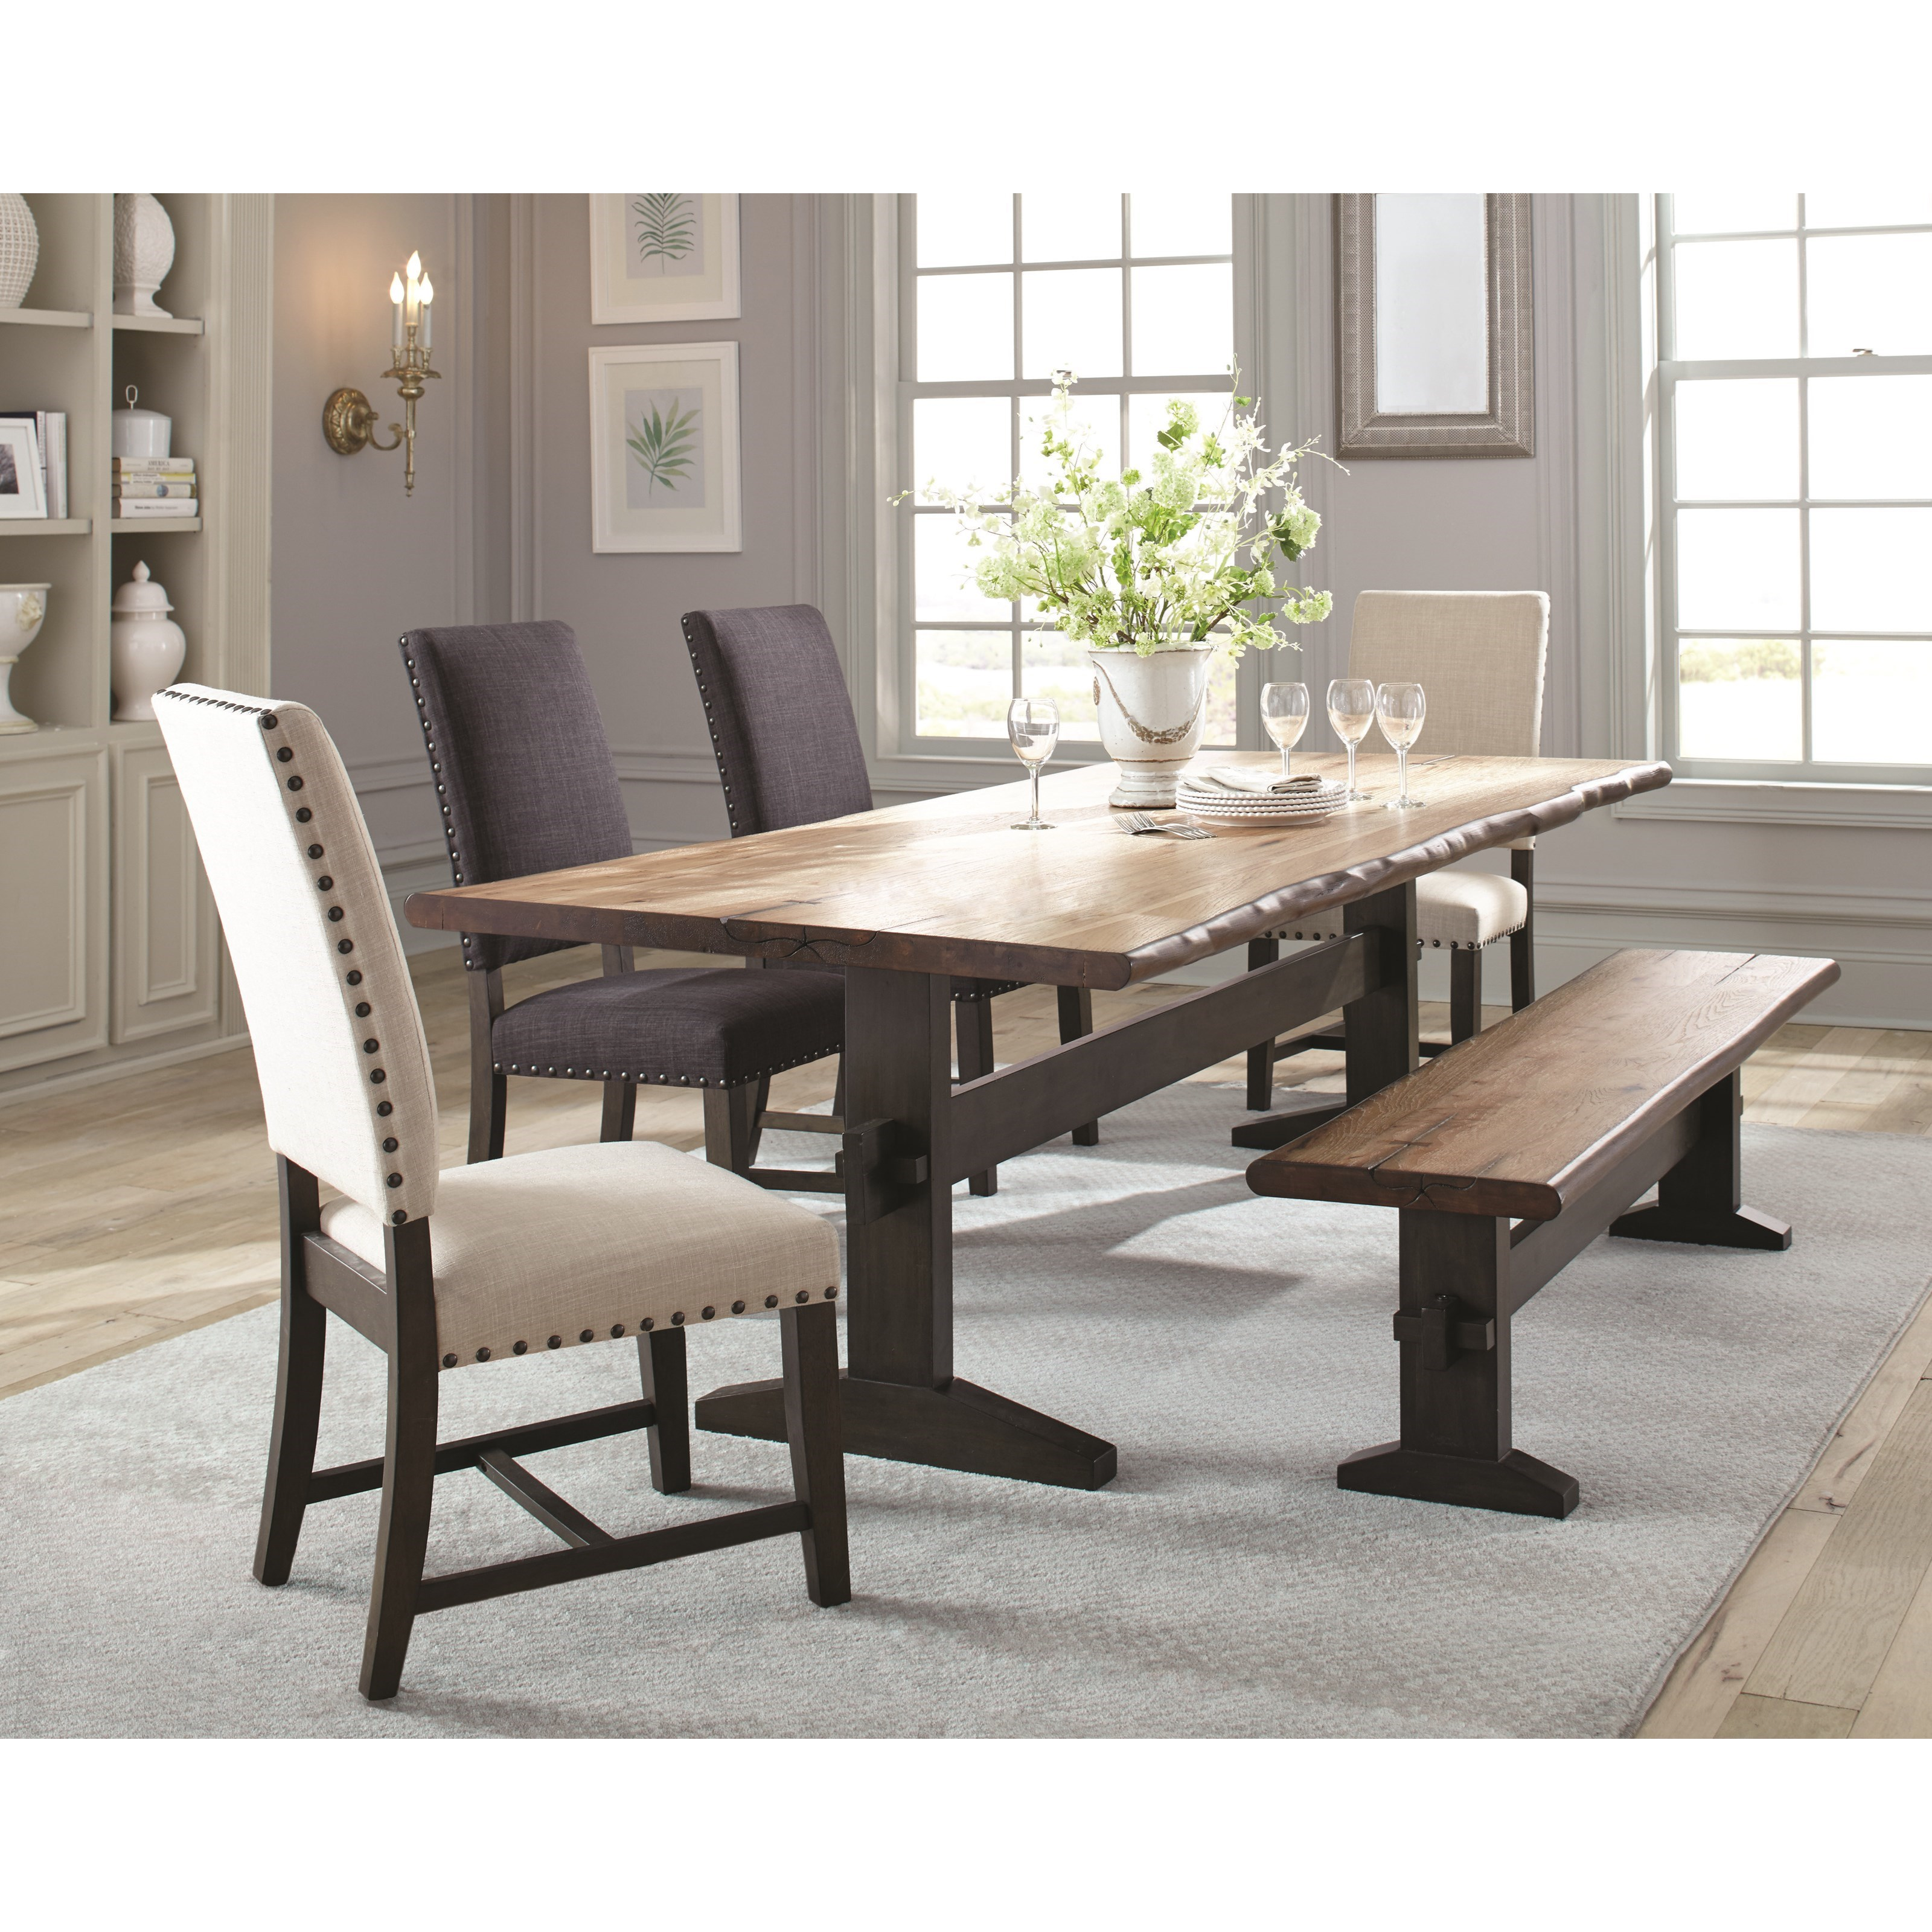 small for in of size with bedroom set tufted storage table dining padded and entryway style room extra banquette oak long narrow kitchen nice full black tables sets white seat window farm bench benches best leather upholstered